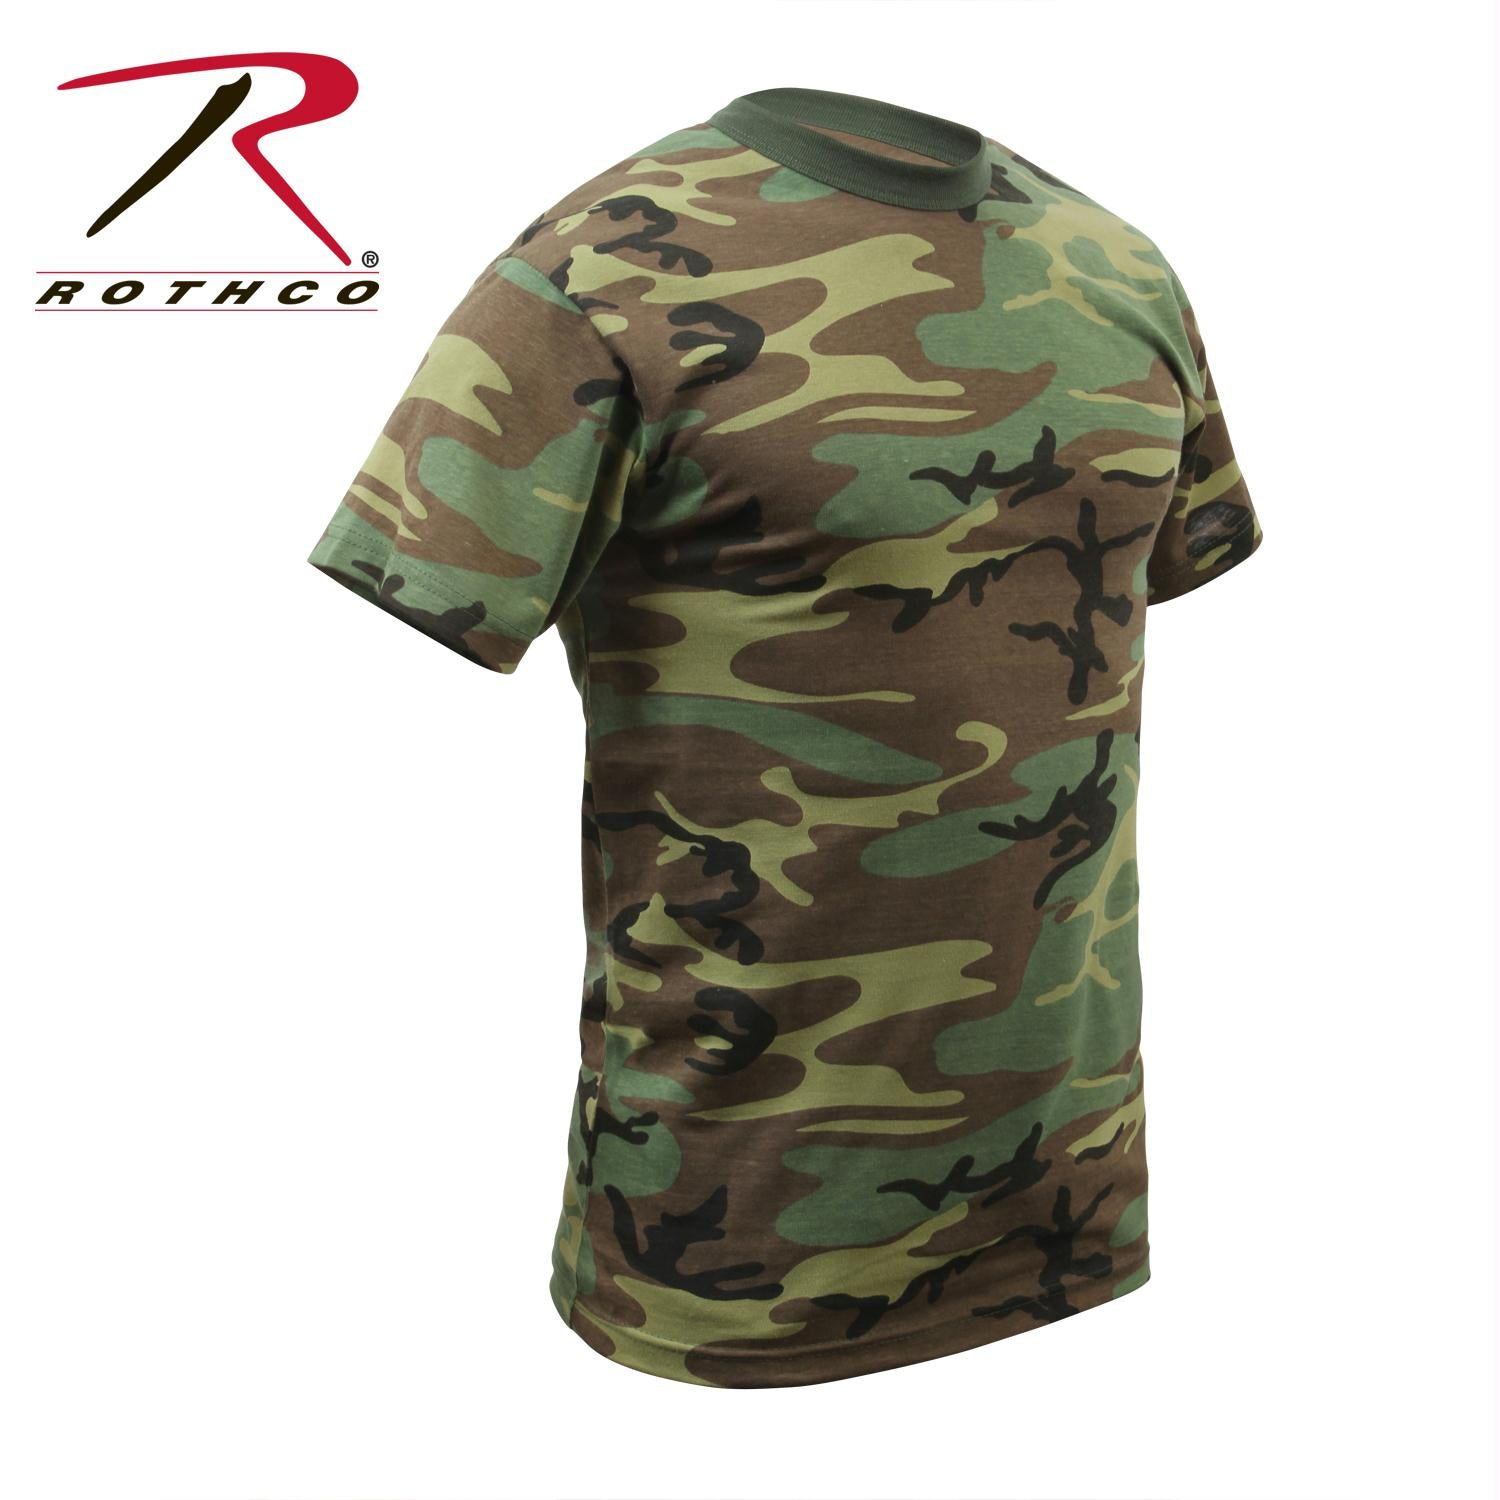 Rothco Childrens Woodland Camo Heavyweight T-Shirt - XL